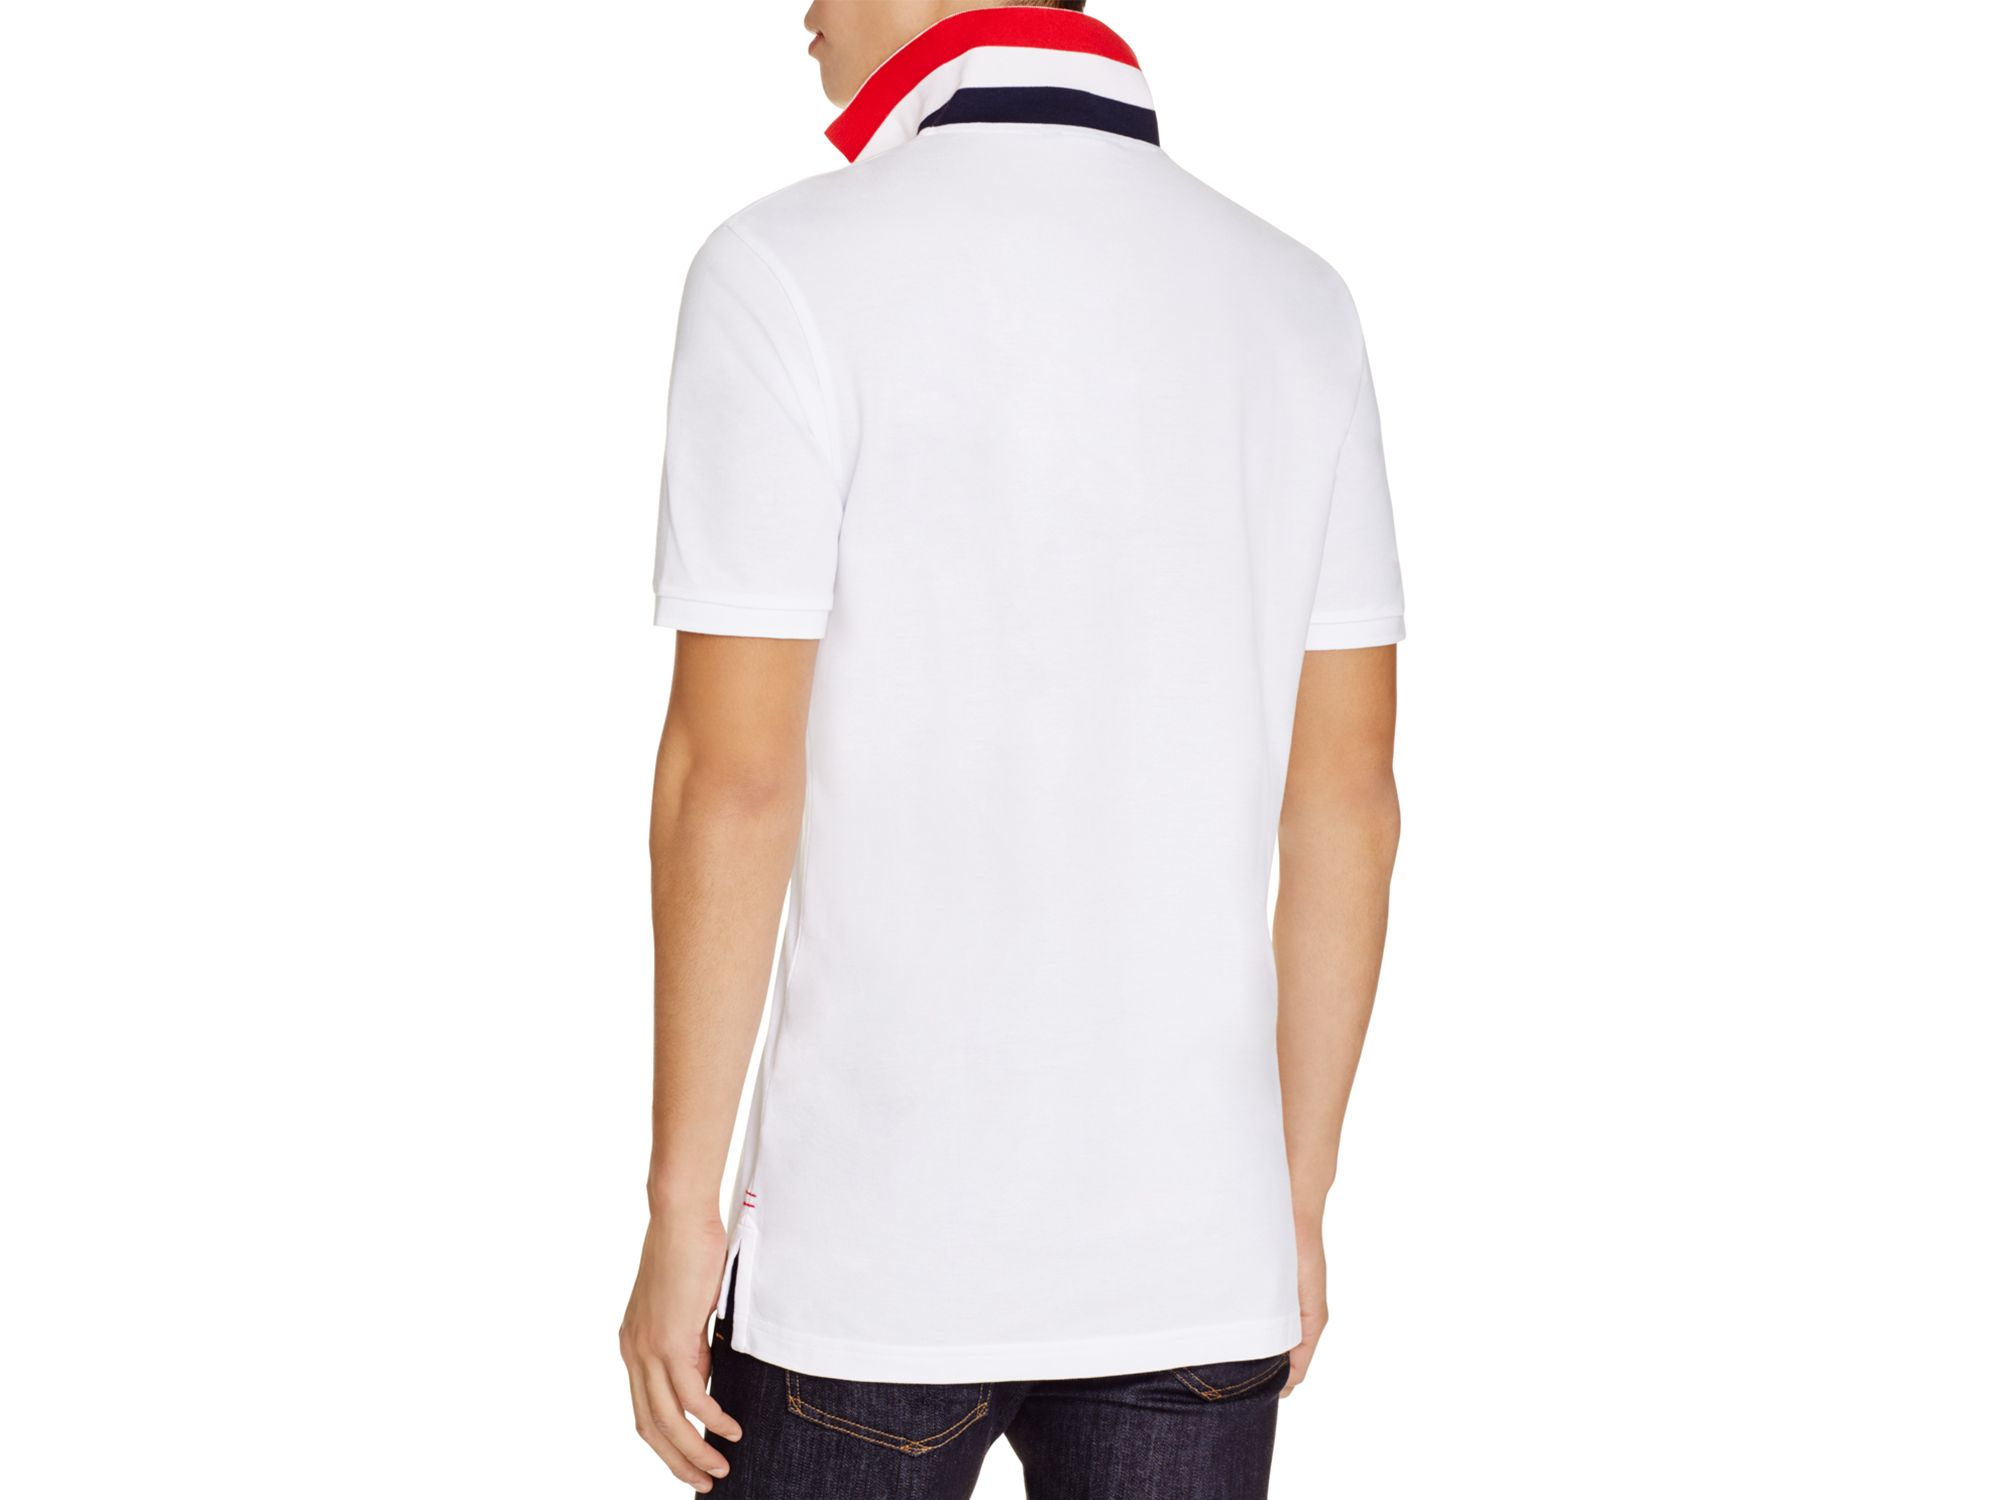 ed9017de41a Lyst - Psycho Bunny Winford Anniversary Regular Fit Polo Shirt in ...